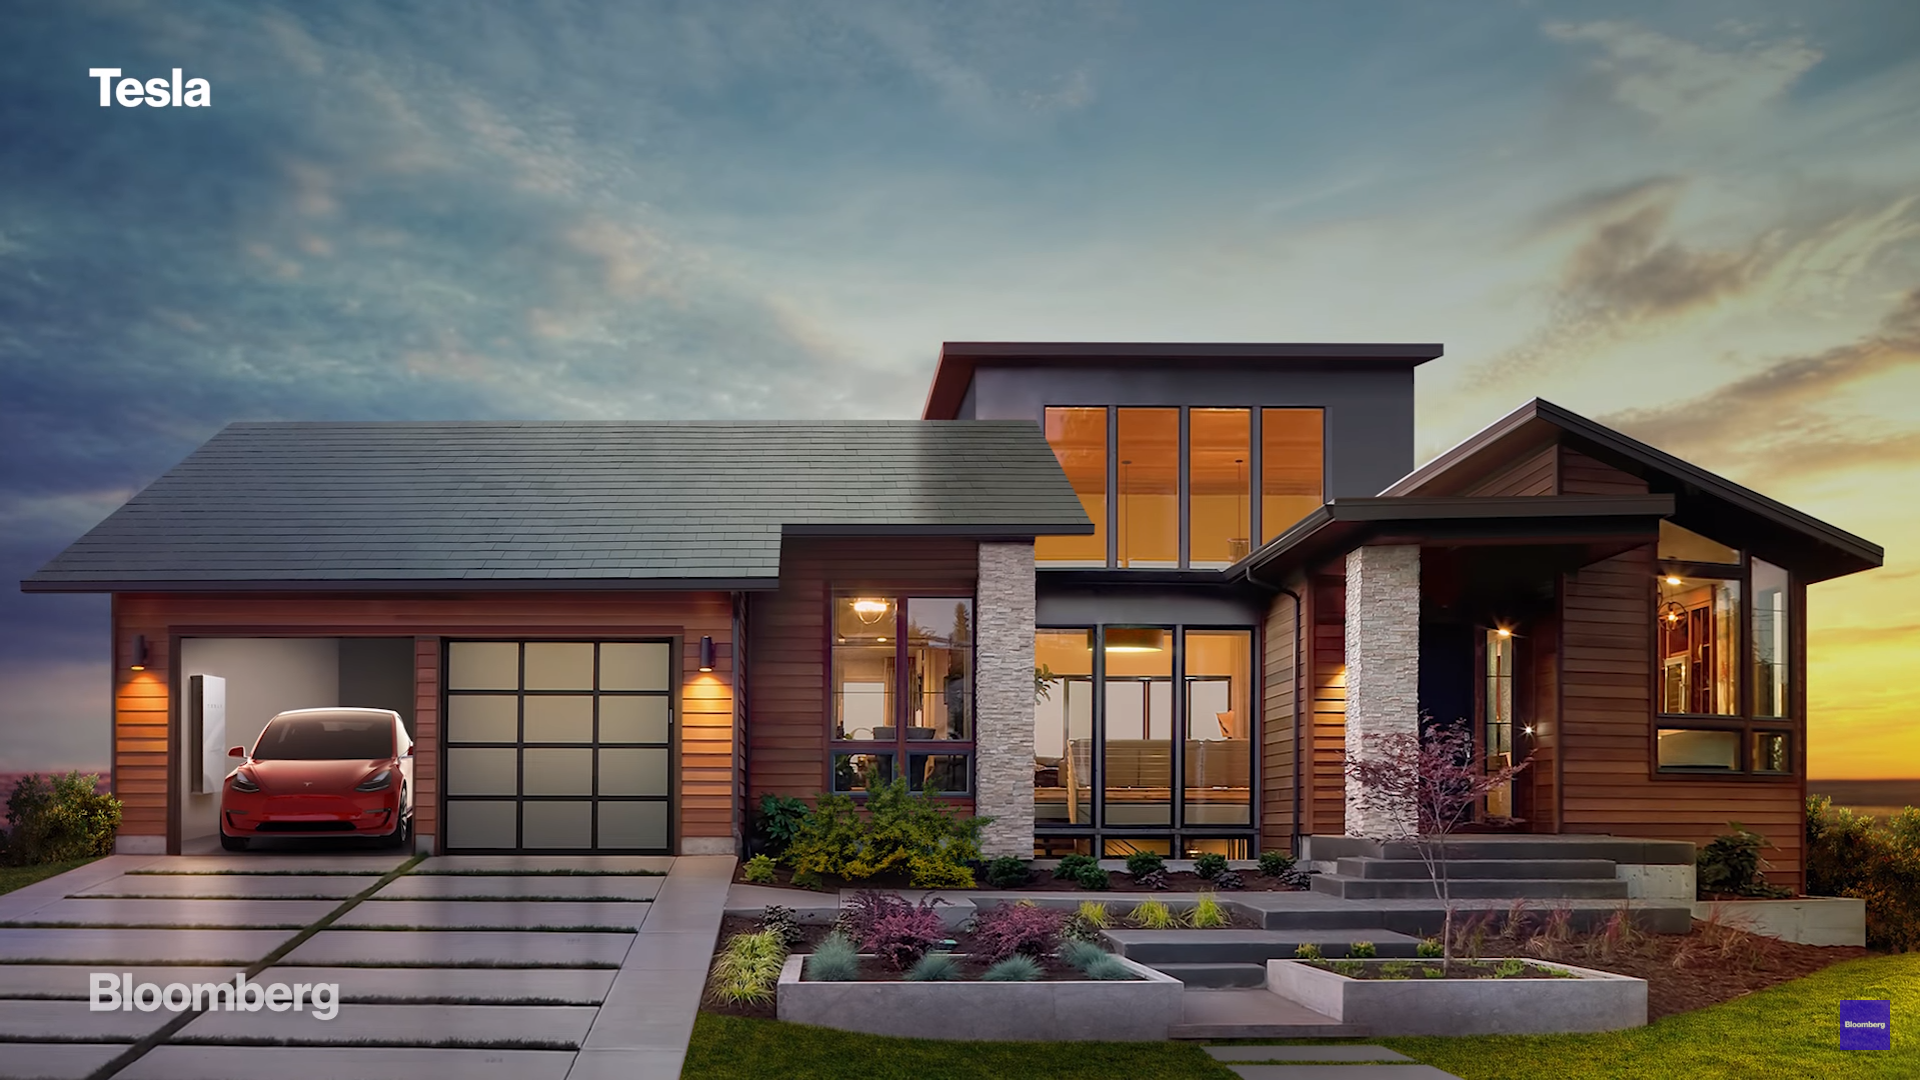 Tesla Solar Roof Elon Musk renewable energy